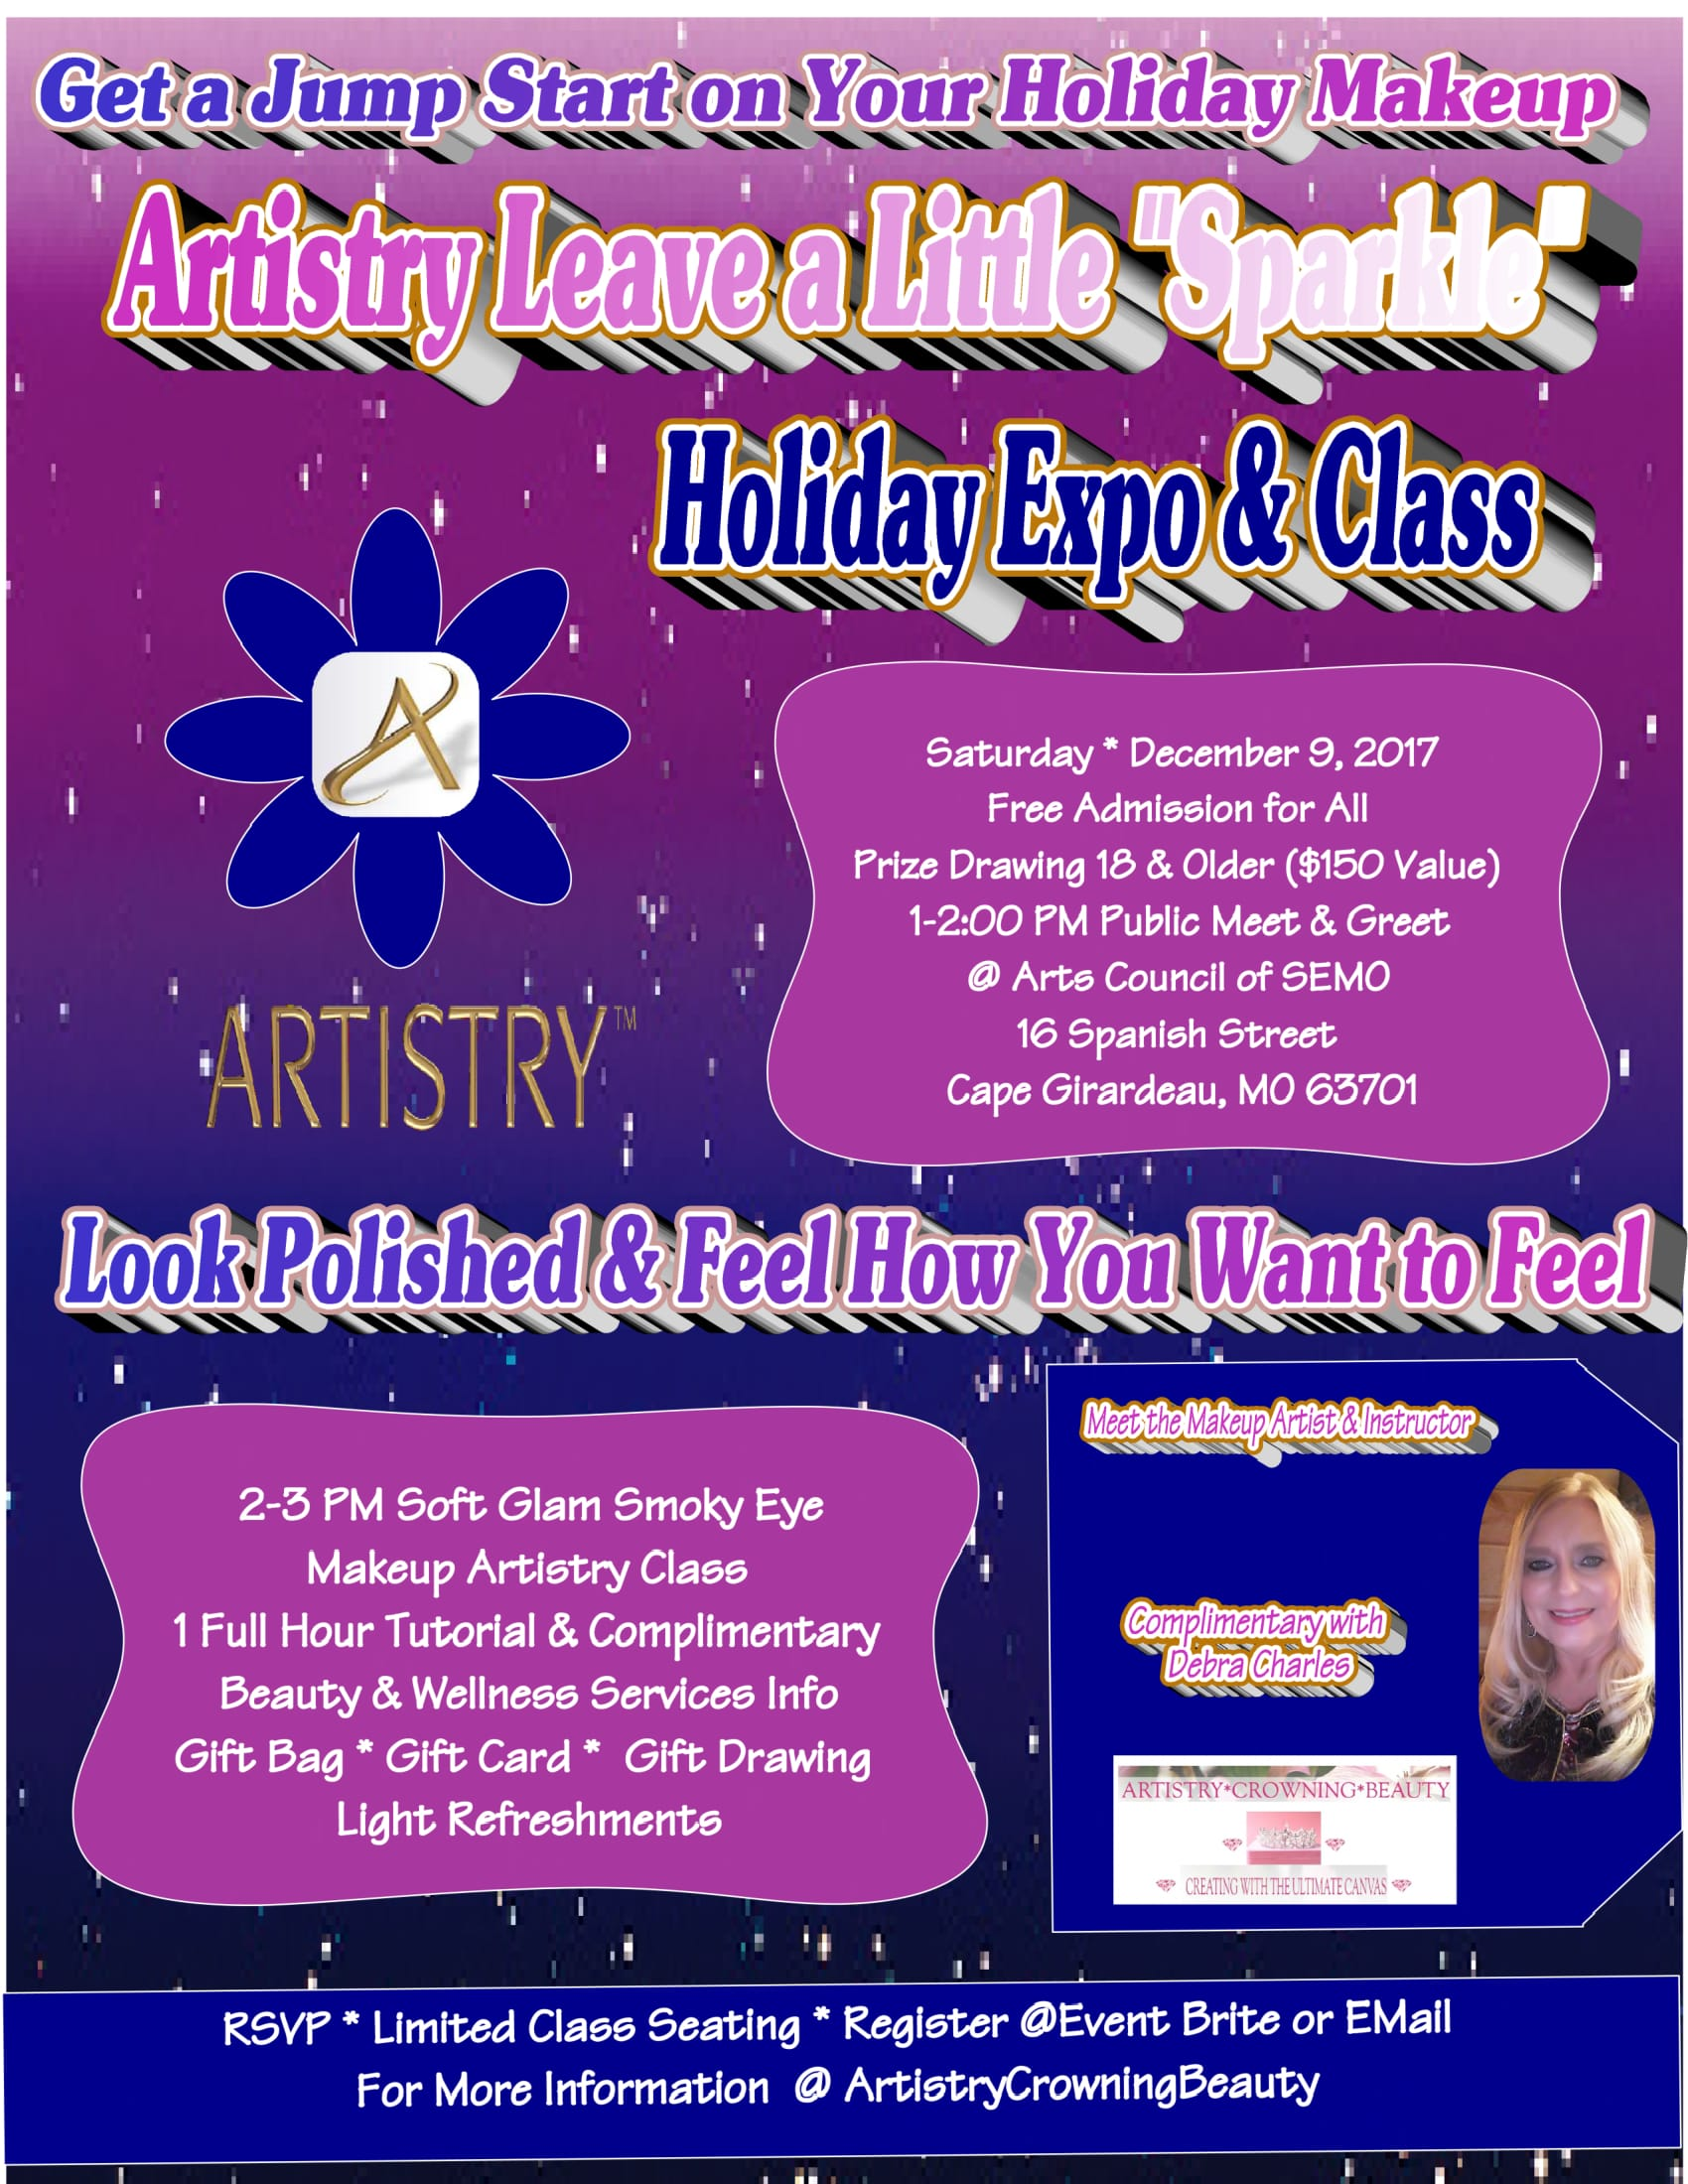 Artistry Holiday Expo & Class